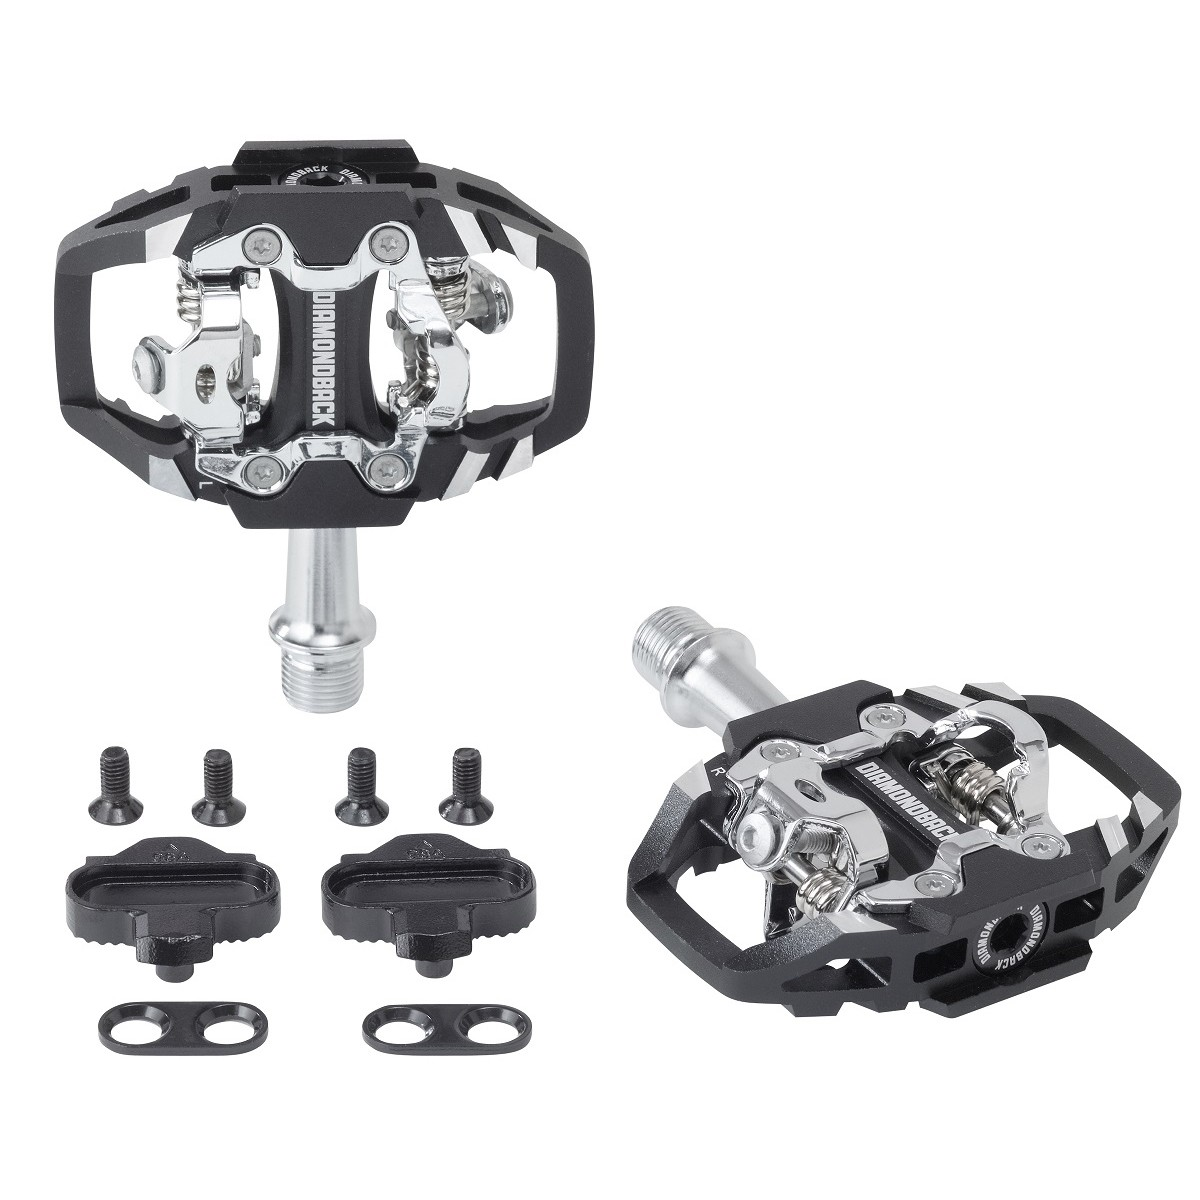 Black SPD-compatible mountain bike pedals with cleats